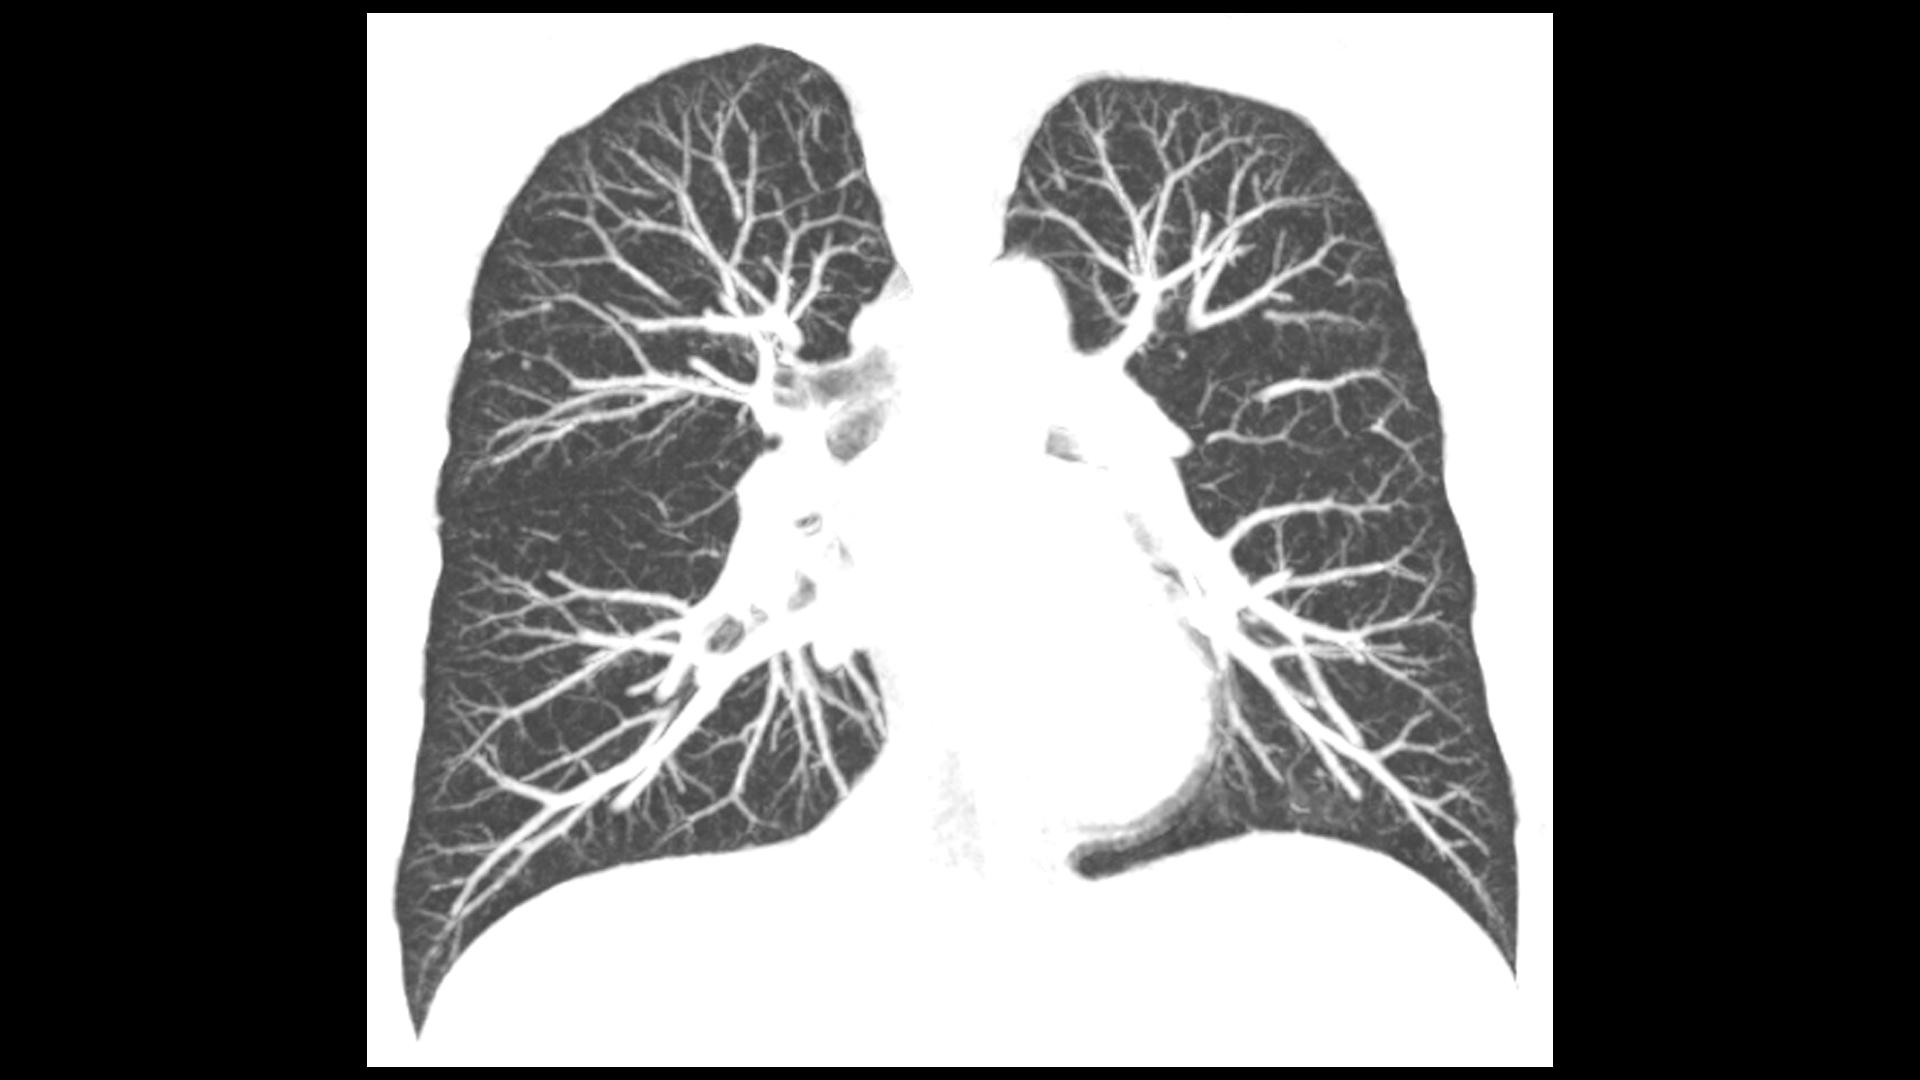 An ultra-low-dose native CT examination was performed to follow up a solitary pulmonary micronodule, 1 mm in diameter, in the right upper lobe of a 38-year-old male patient.